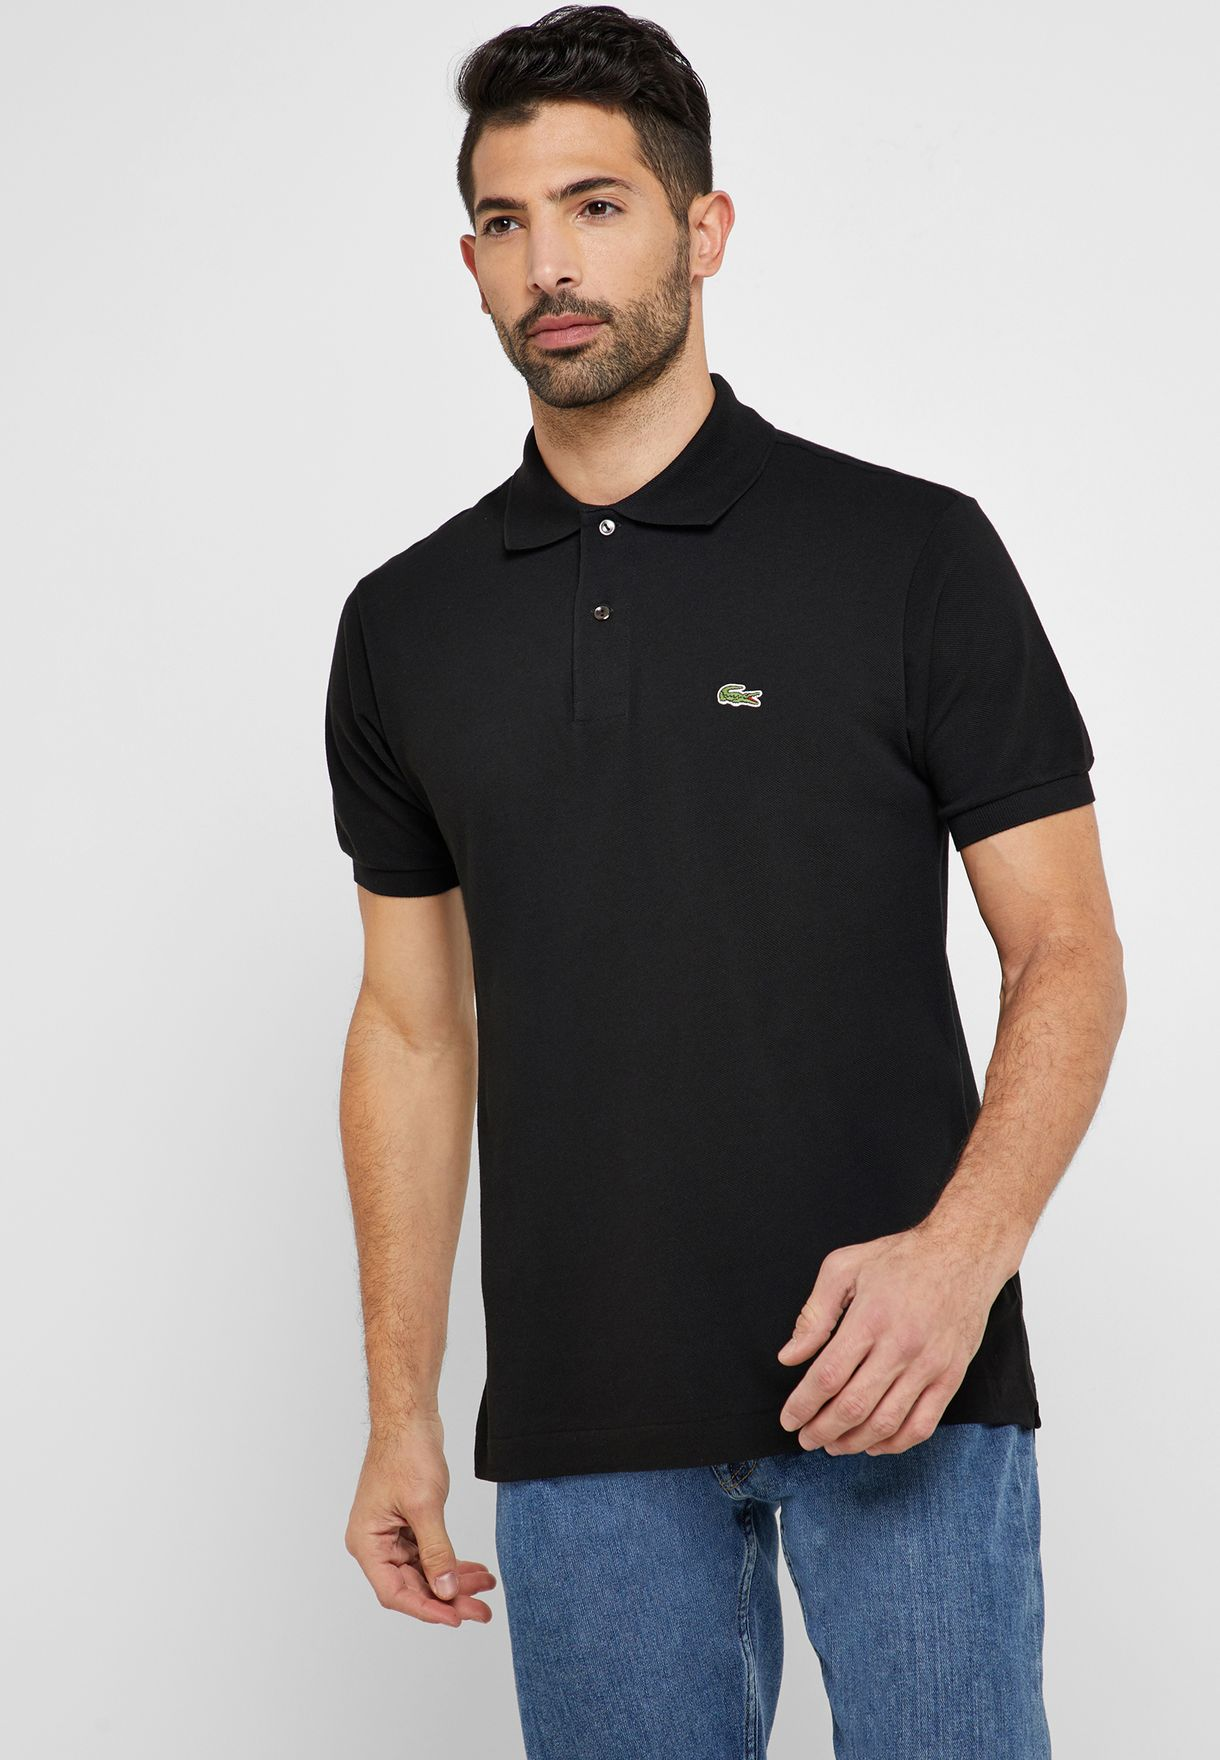 Pique Pique Black Black Classic Classic Classic Polo Pique Polo Classic Pique Polo Black CsQdrth